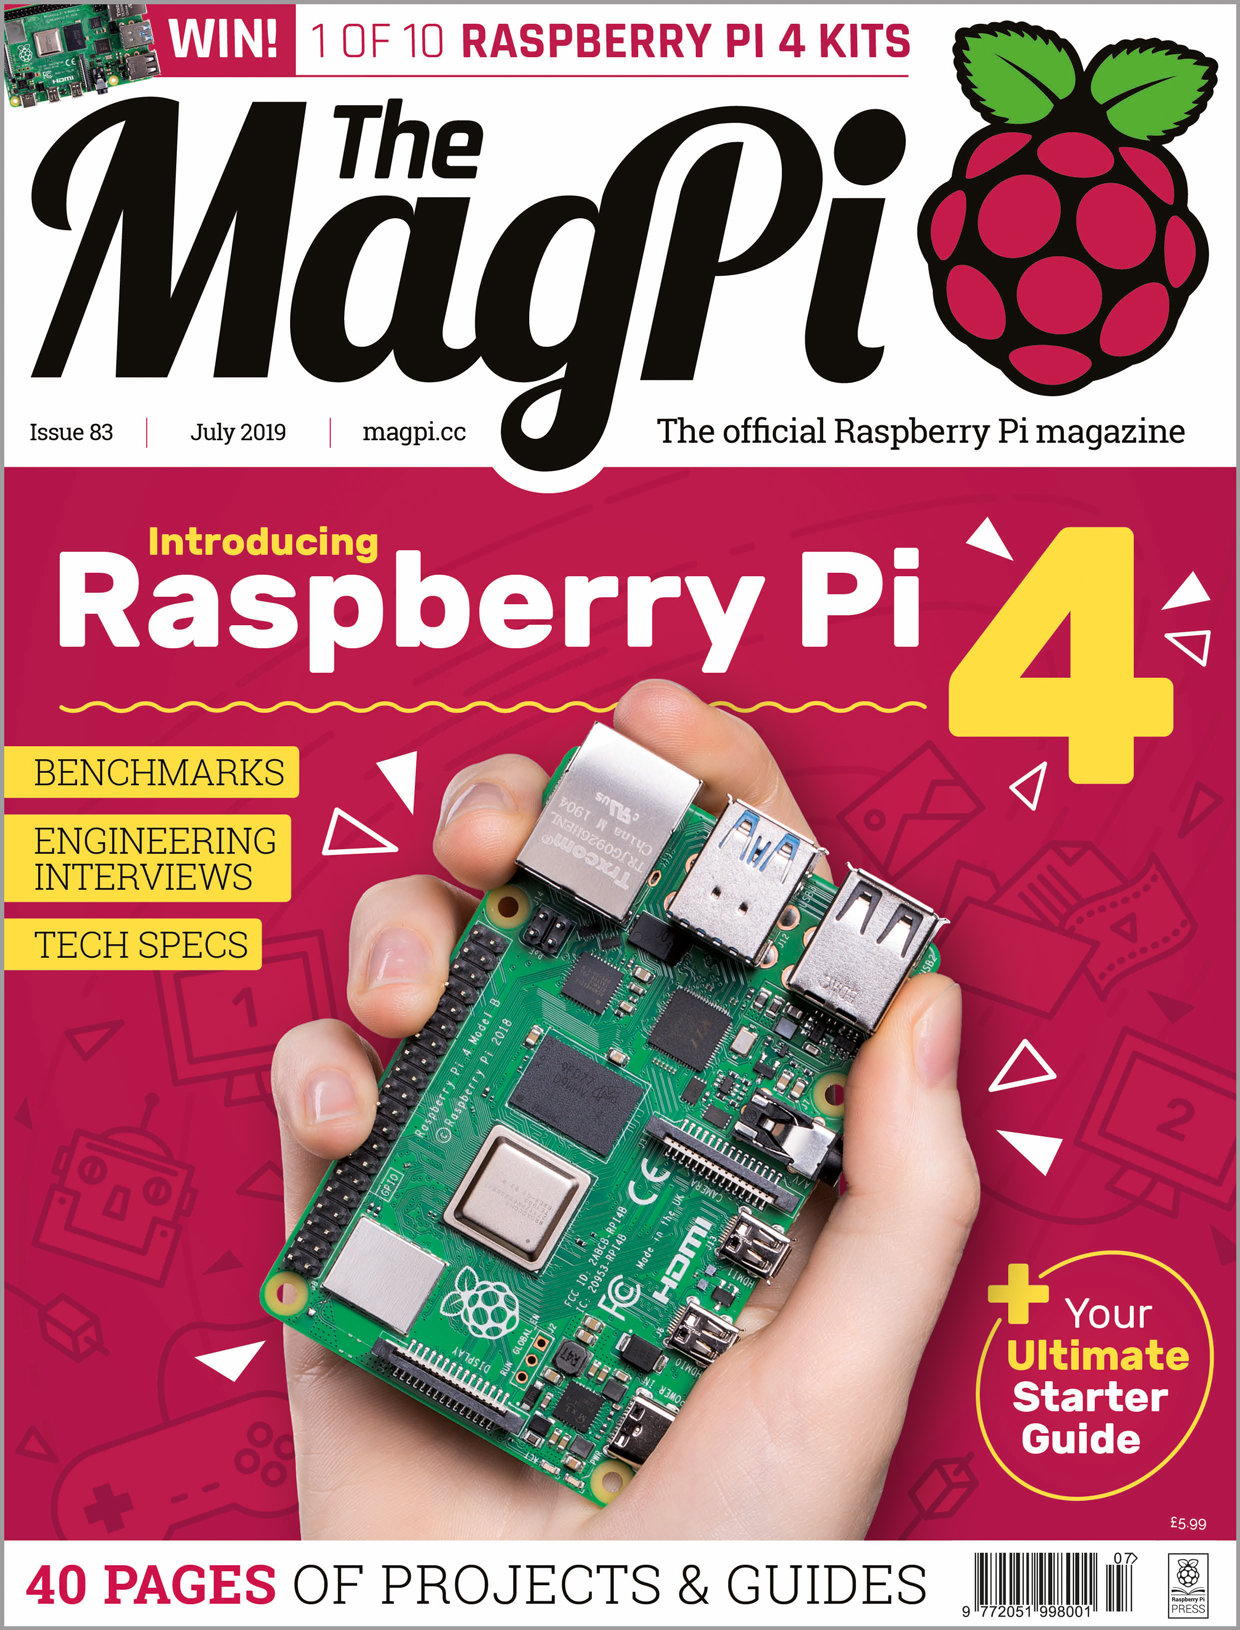 Back Issues & books - The MagPi MagazineThe MagPi Magazine